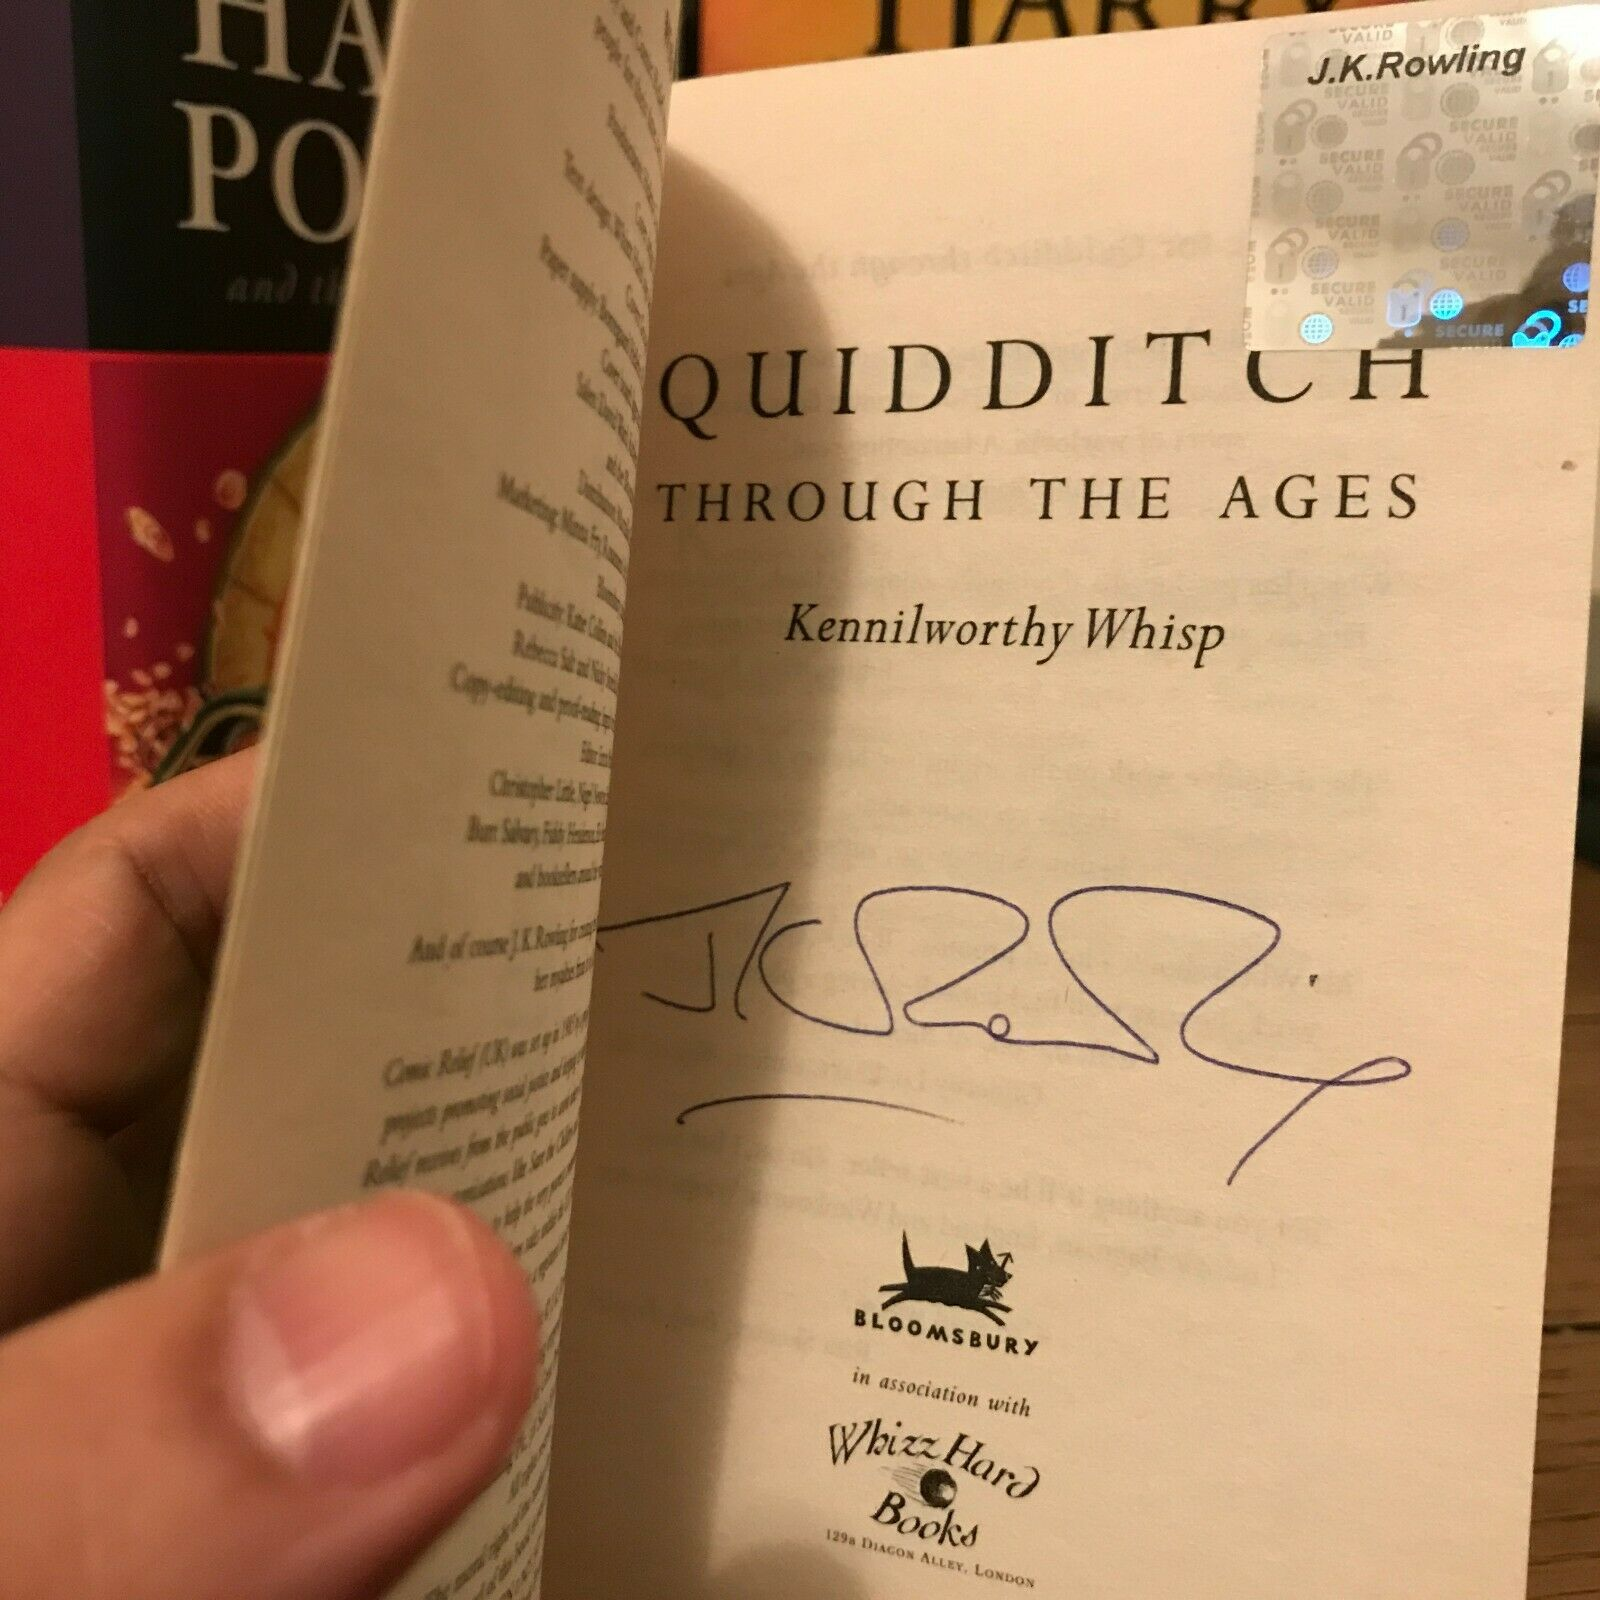 JK Rowling Forgery with an authentic hologram inside of a Quidditch Through the Ages